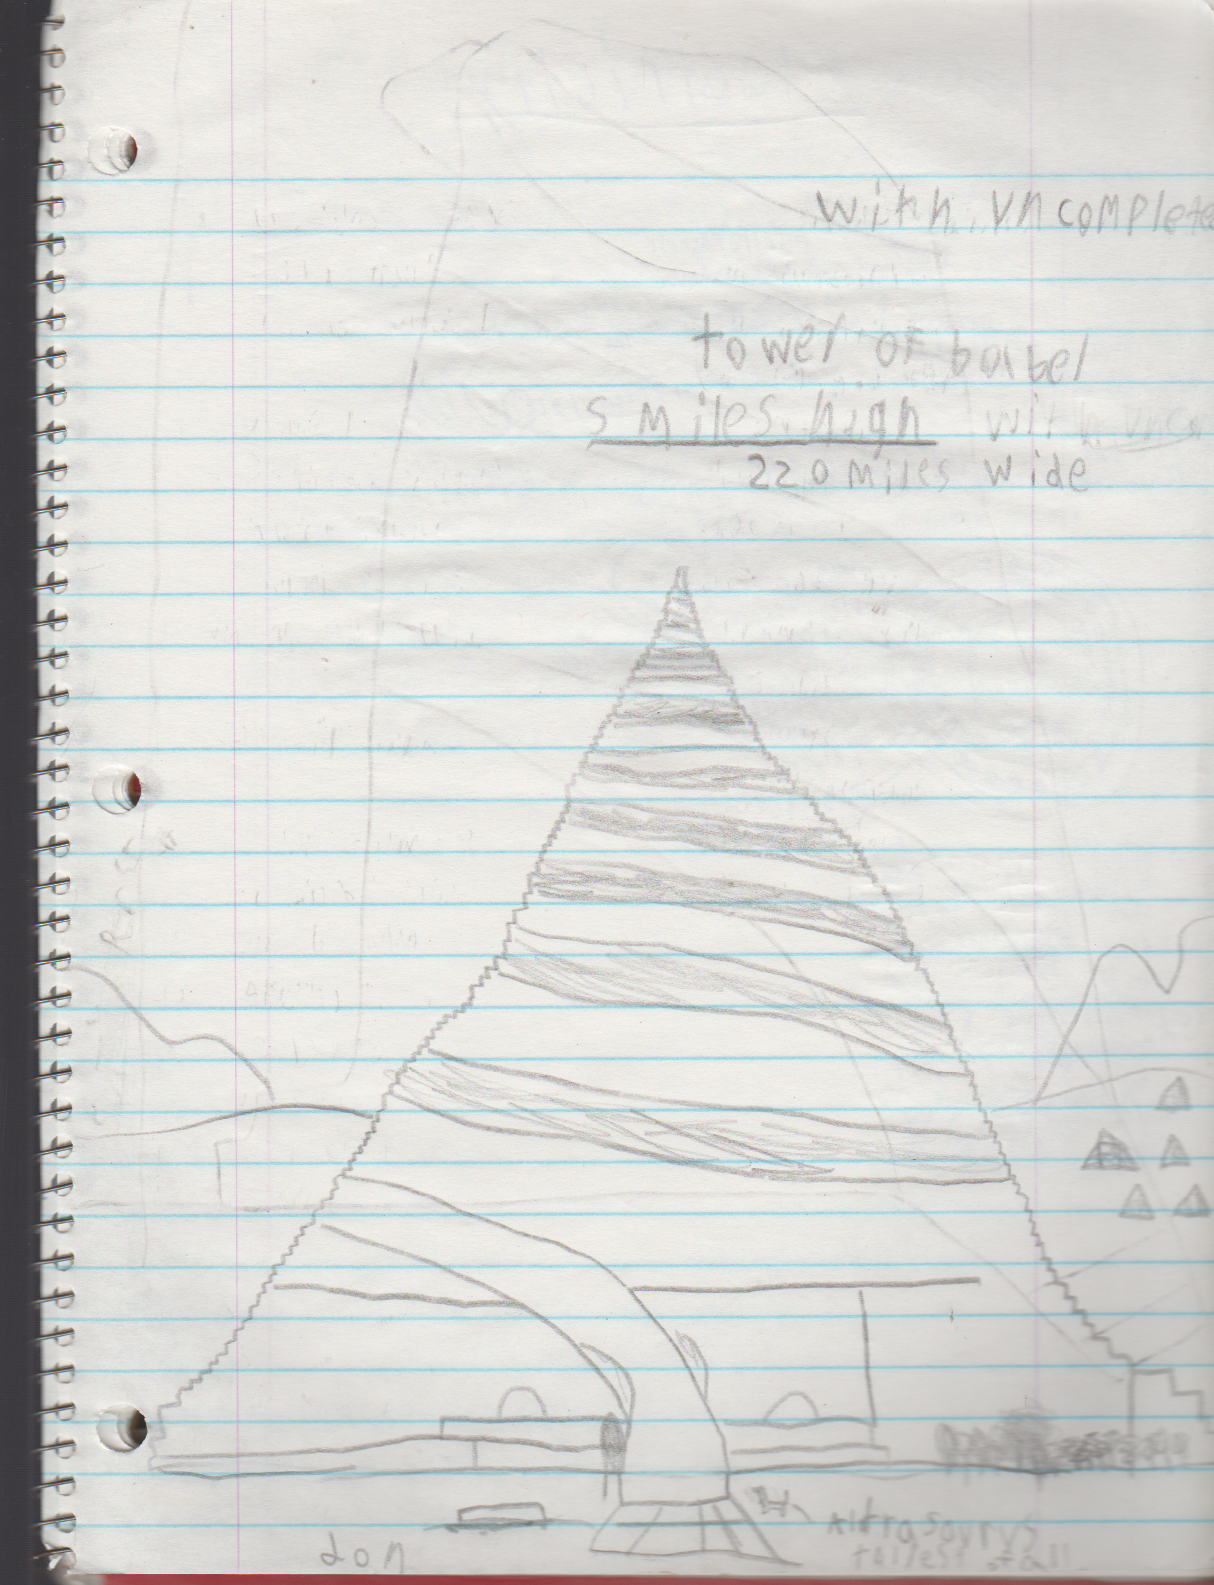 1996-08-18 - Saturday - 11 yr old Joey Arnold's School Book, dates through to 1998 apx, mostly 96, Writings, Drawings, Etc-055.png